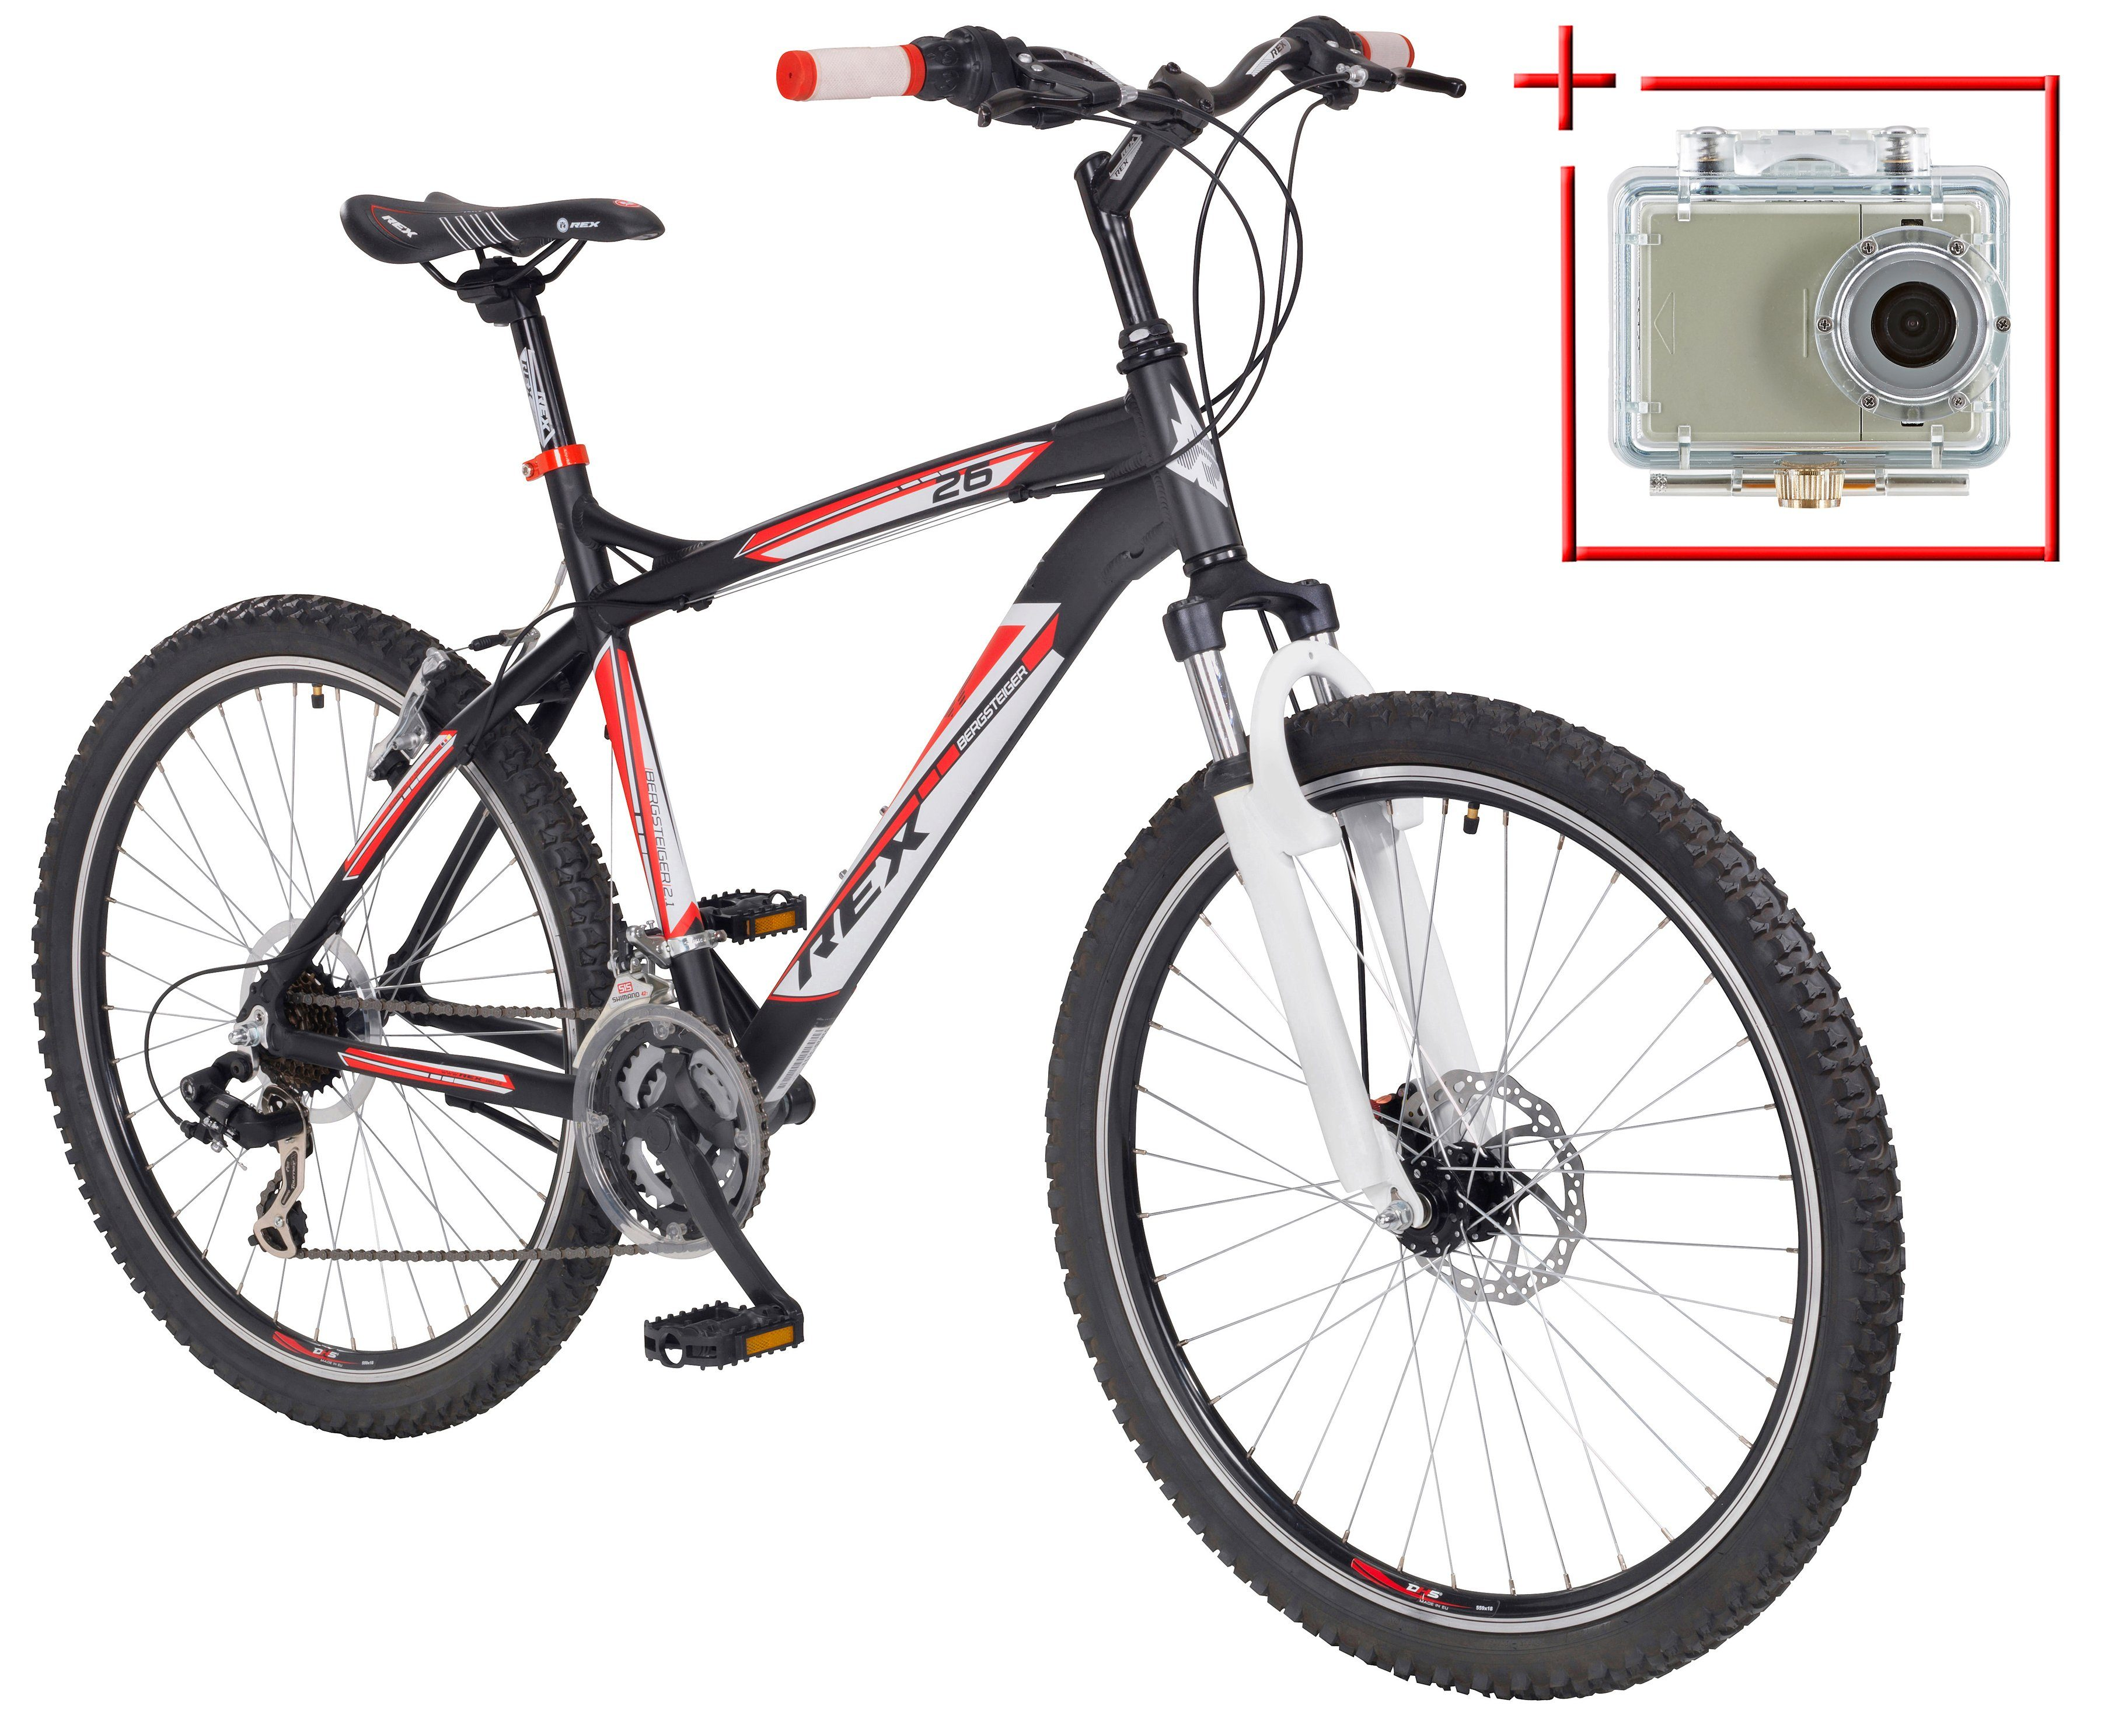 Mountainbike »Bergsteiger 6.2«, 26 Zoll, SHIMANO 21 Gang, inkl. Action-Cam